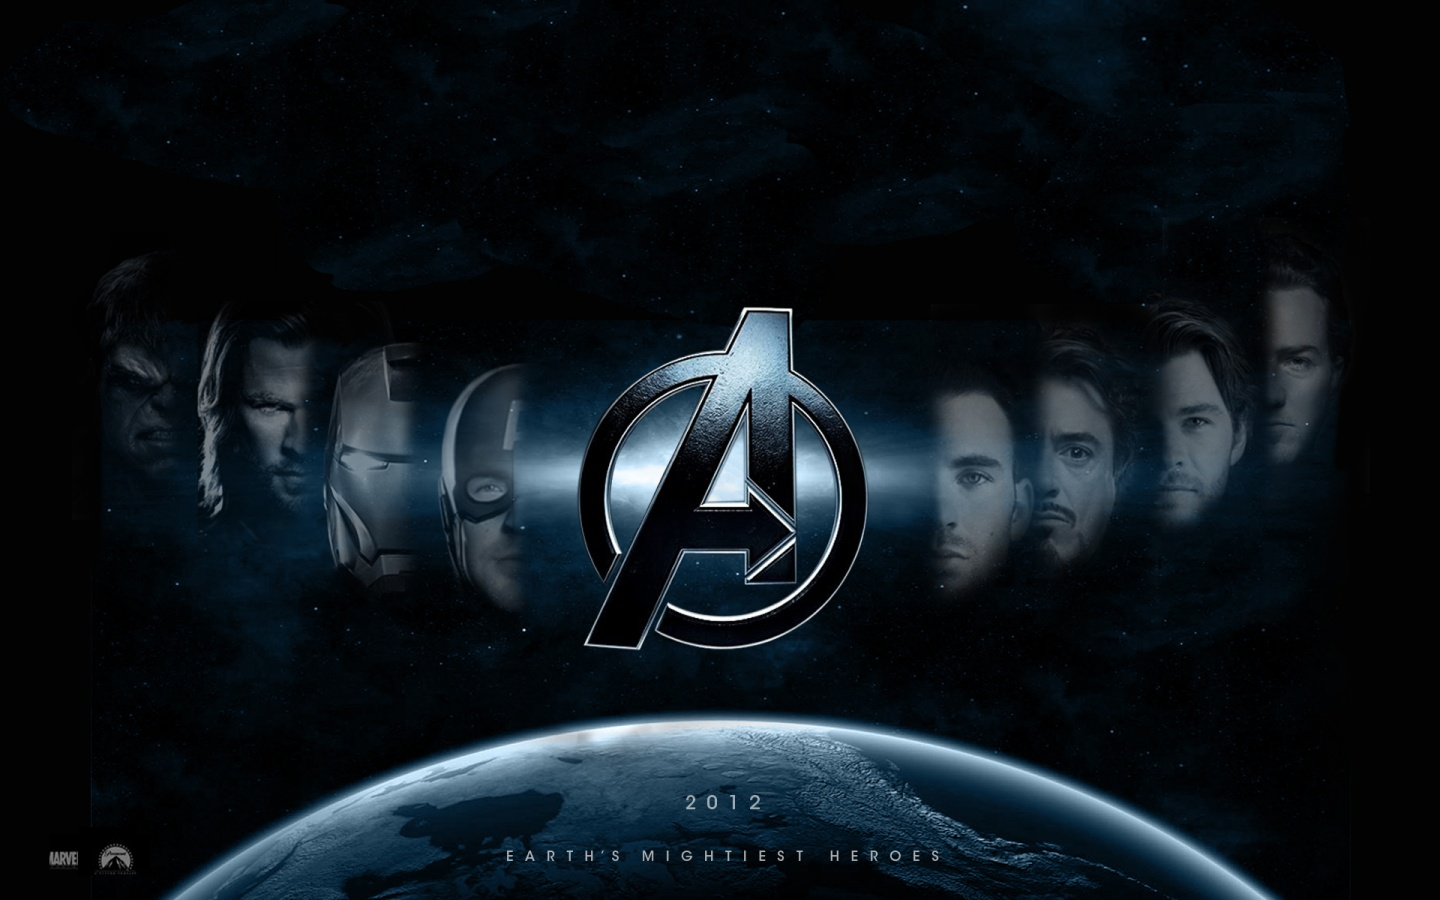 The Avengers Movie: The Avengers: My Short Movie Review + Free HD Wallpapers